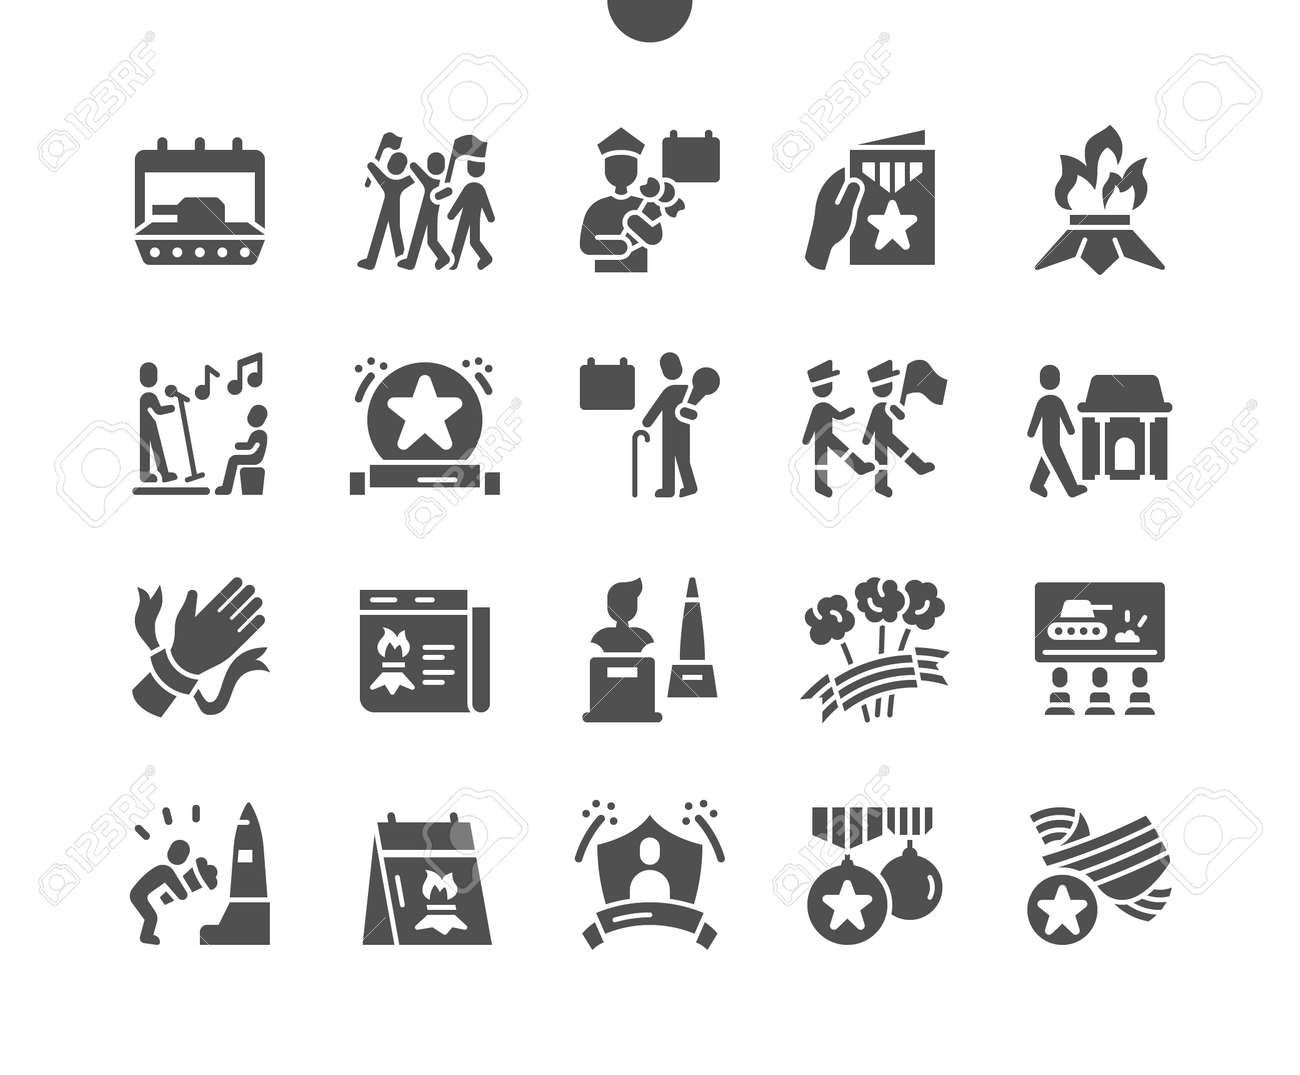 Victory Day 9 May. Calendar. War veteran. Monuments to the heroes. Ninth of may. Holiday. Winner, parade, soldier, memory, win and freedom. Vector Solid Icons. Simple Pictogram - 168492876